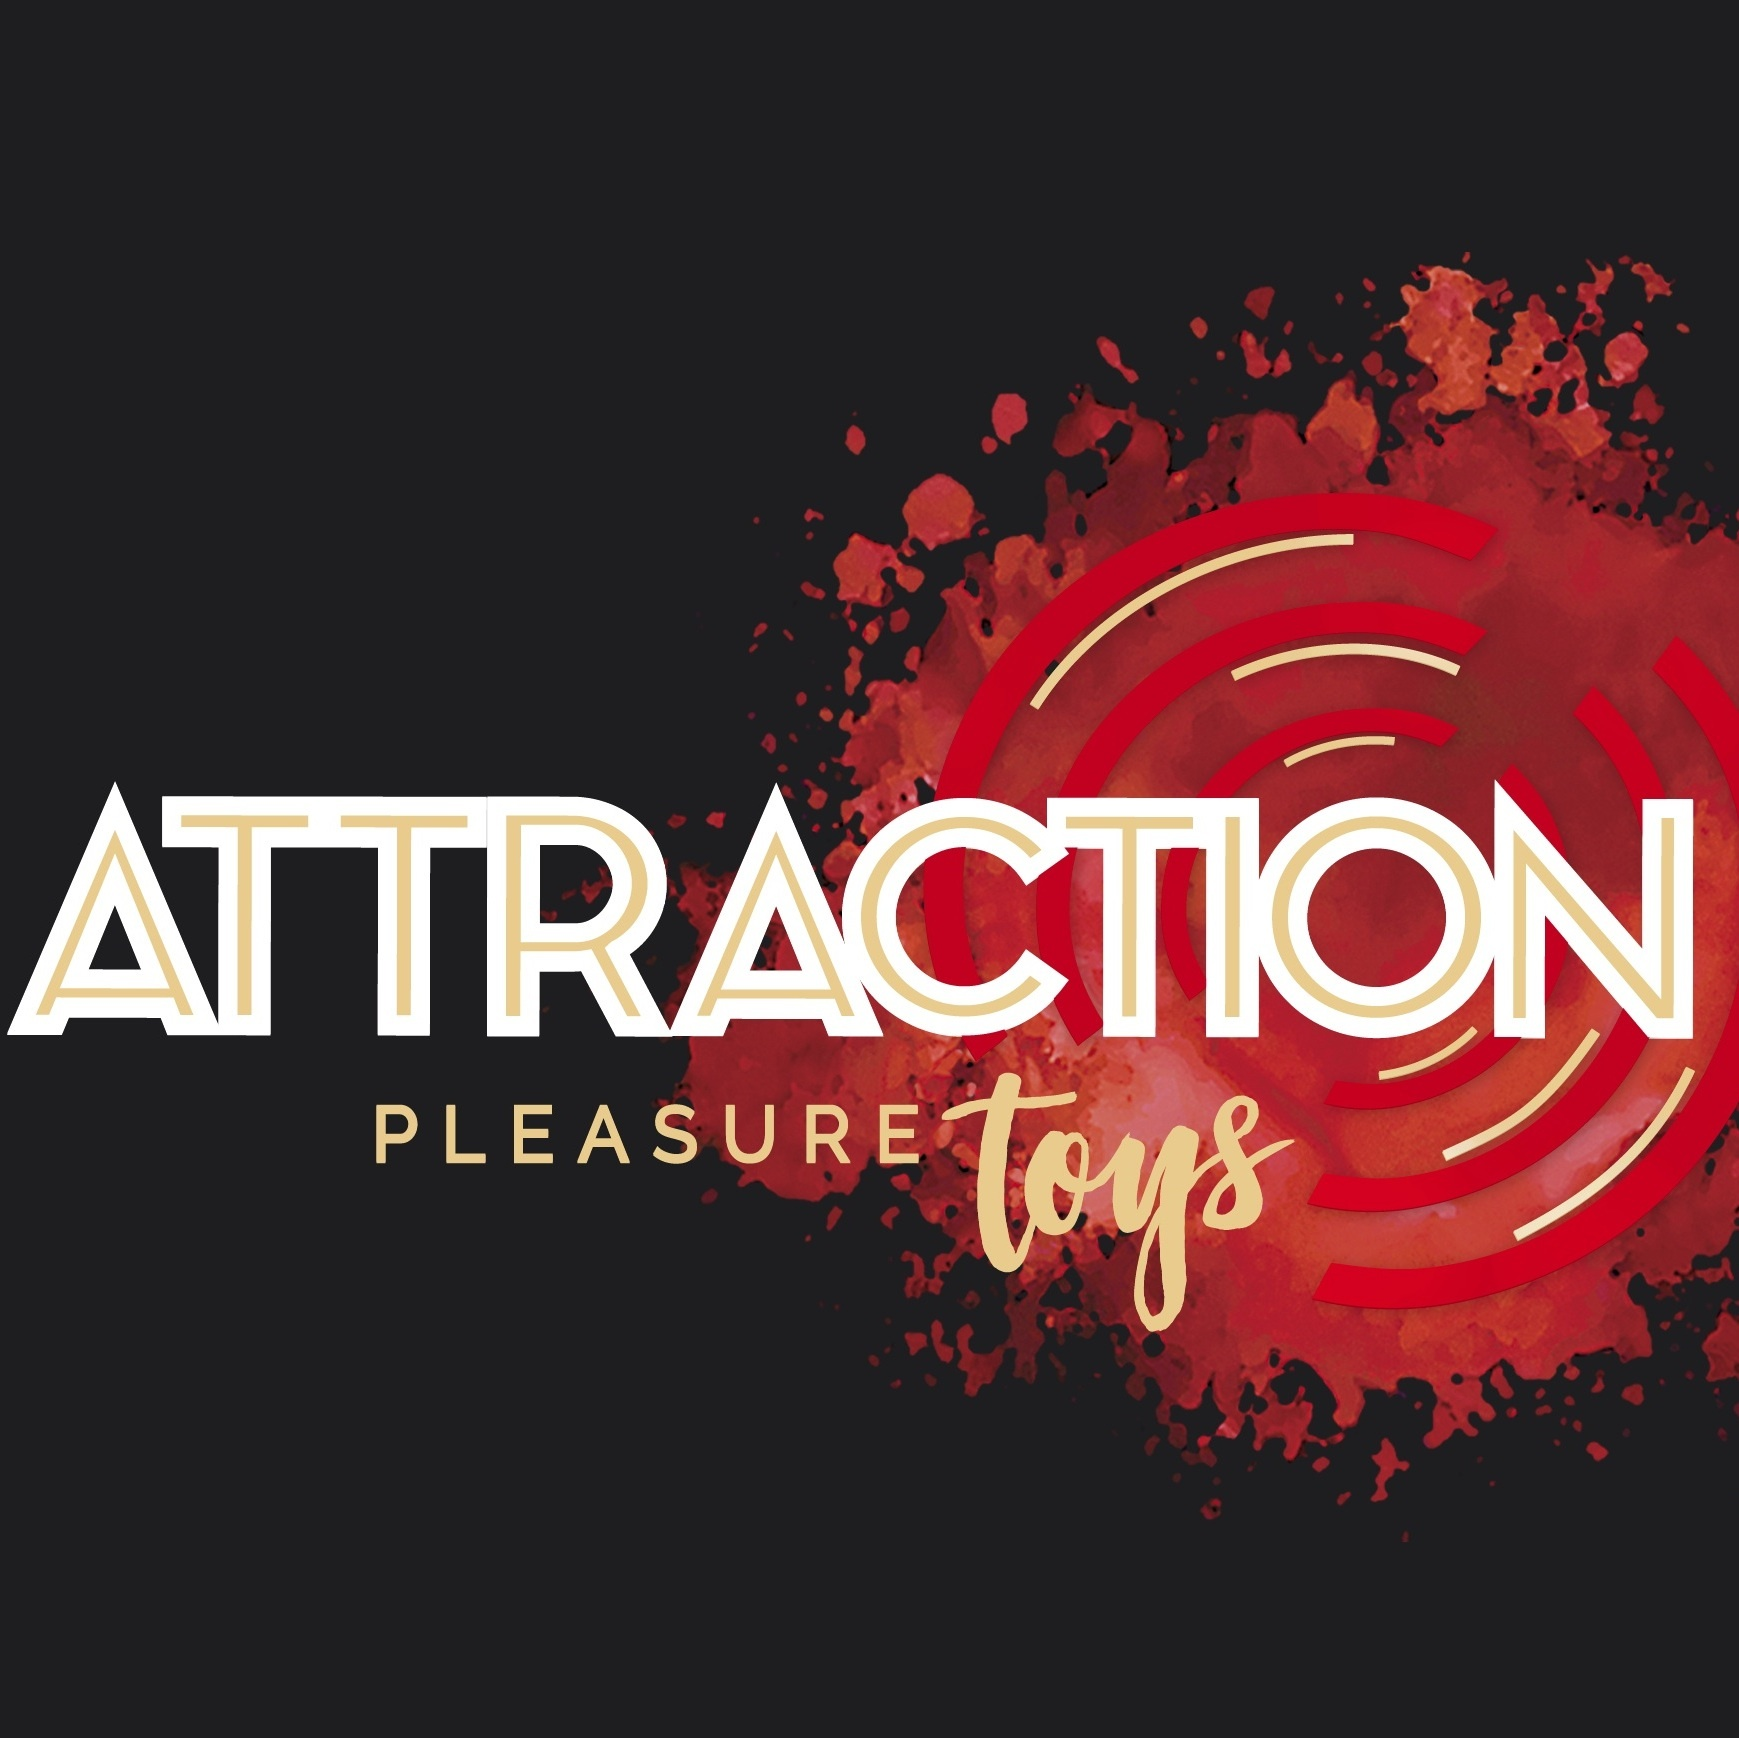 Attraction_Toys